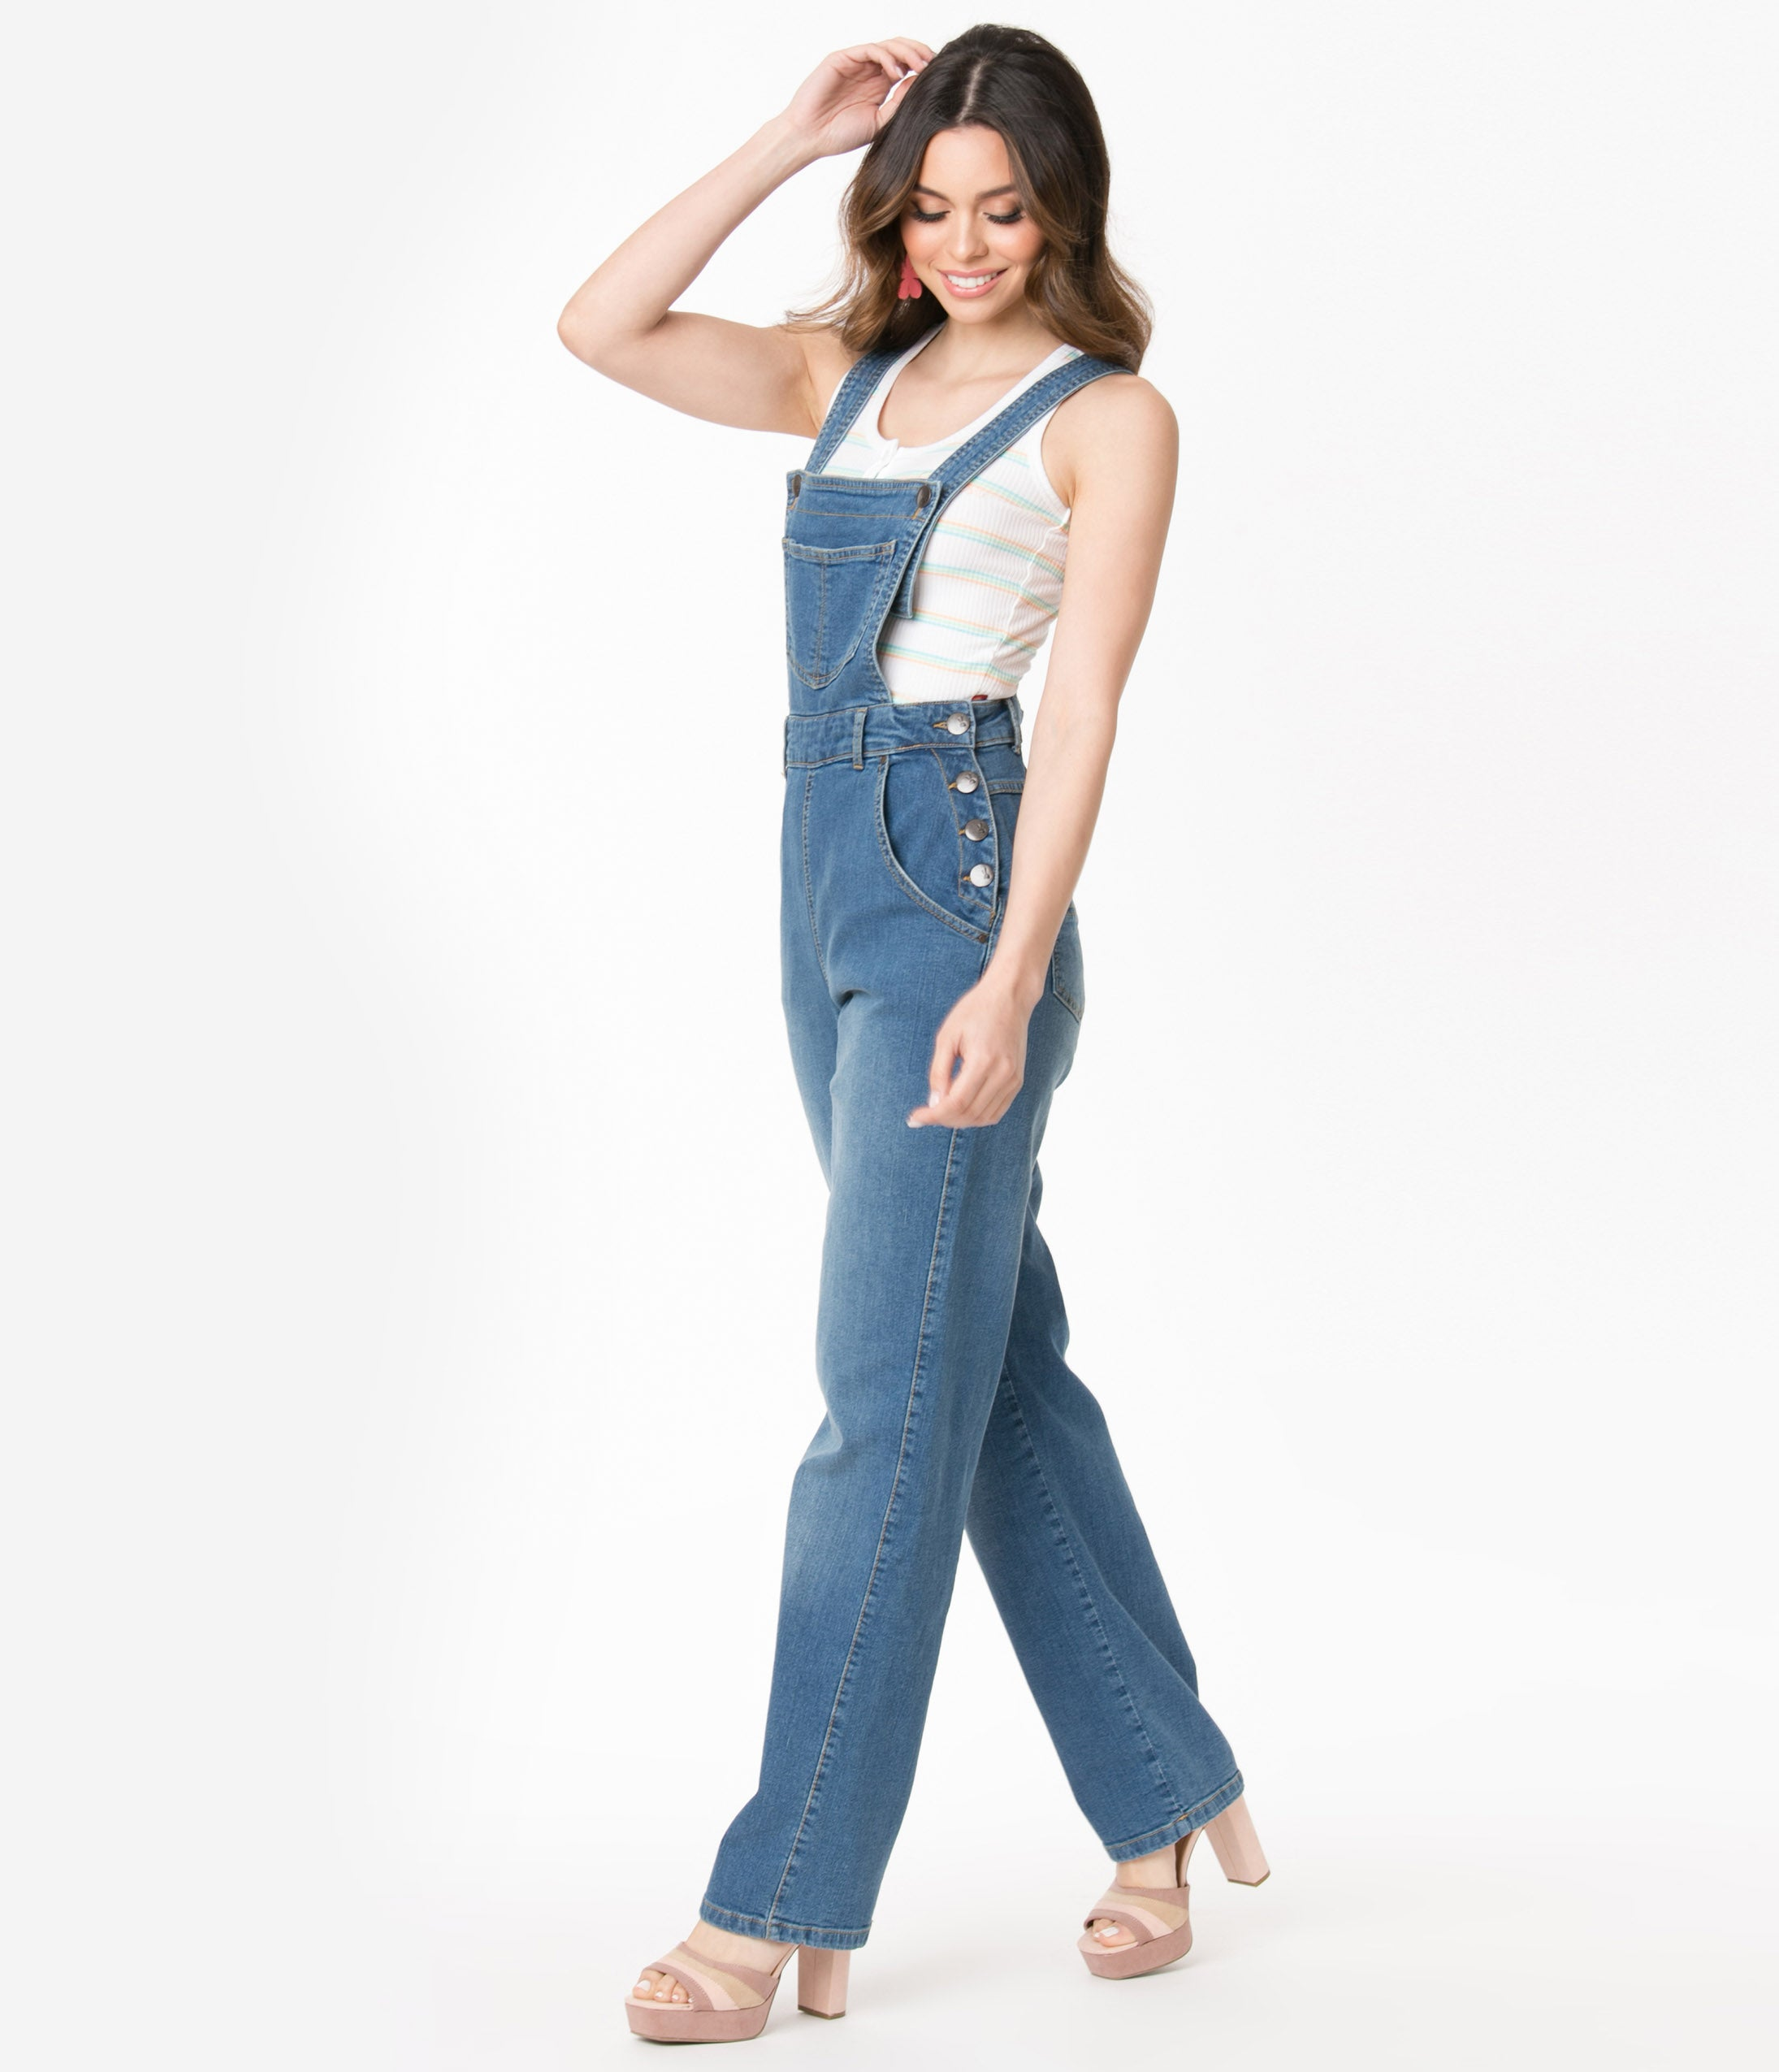 Vintage Overalls 1910s -1950s History & Shop Overalls Hell Bunny Blue Jean Betty Bee Denim Dungaree $82.00 AT vintagedancer.com